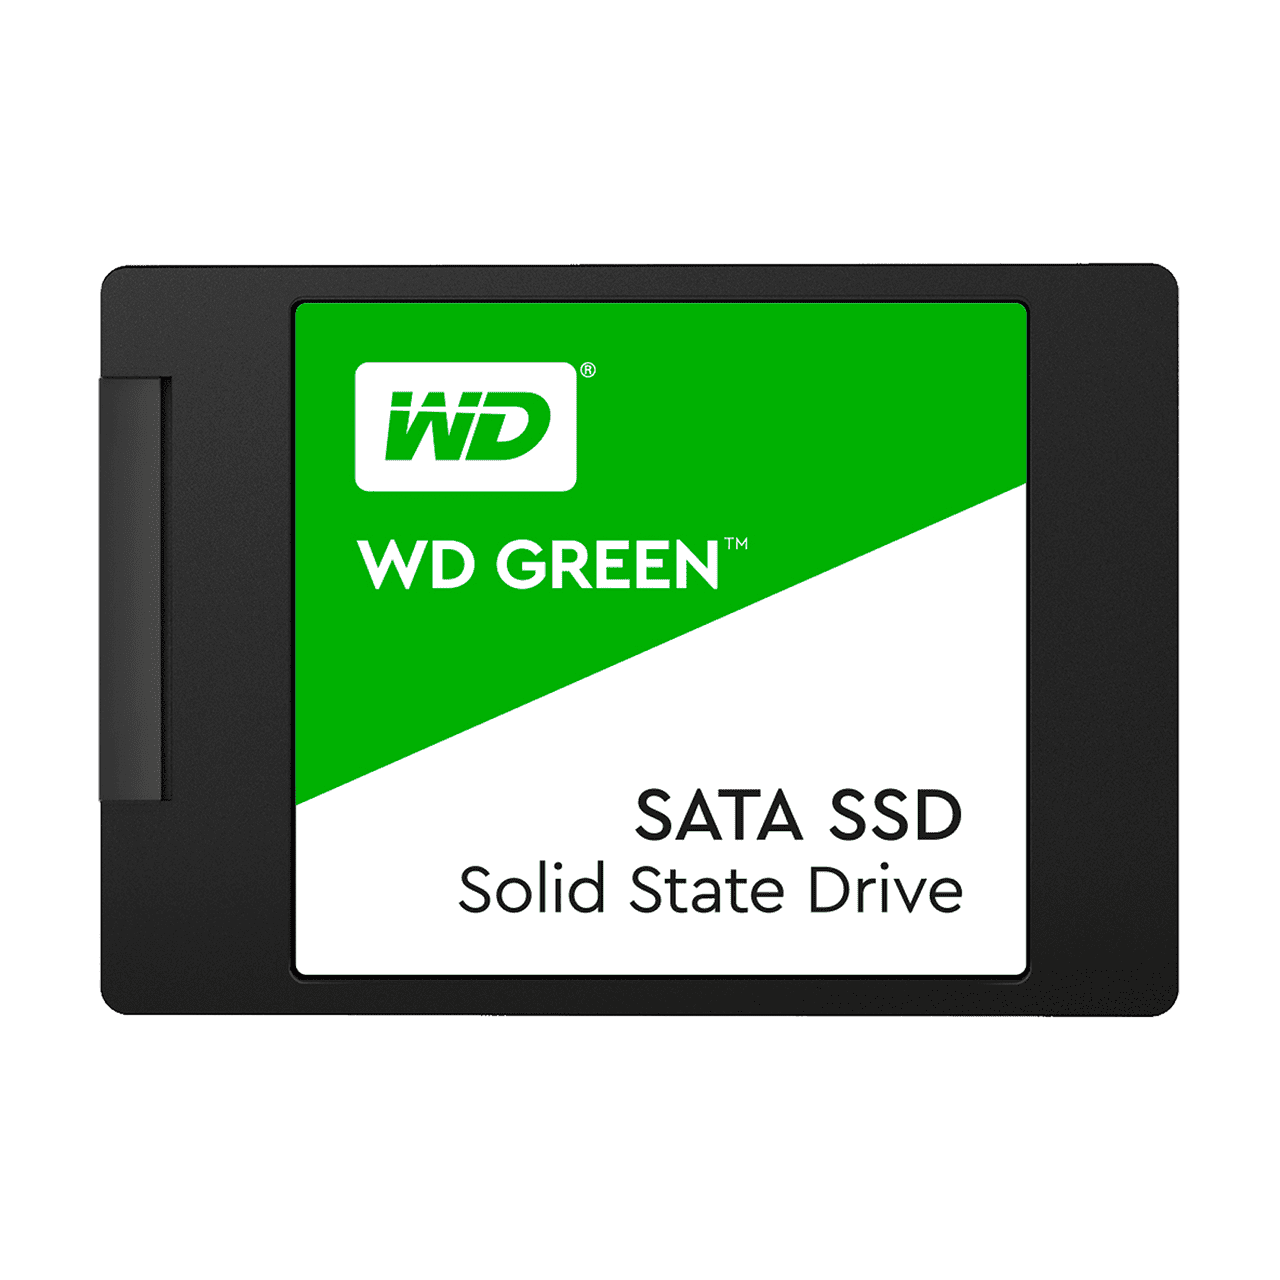 wd-green-ssd-front.png.thumb.1280.12806